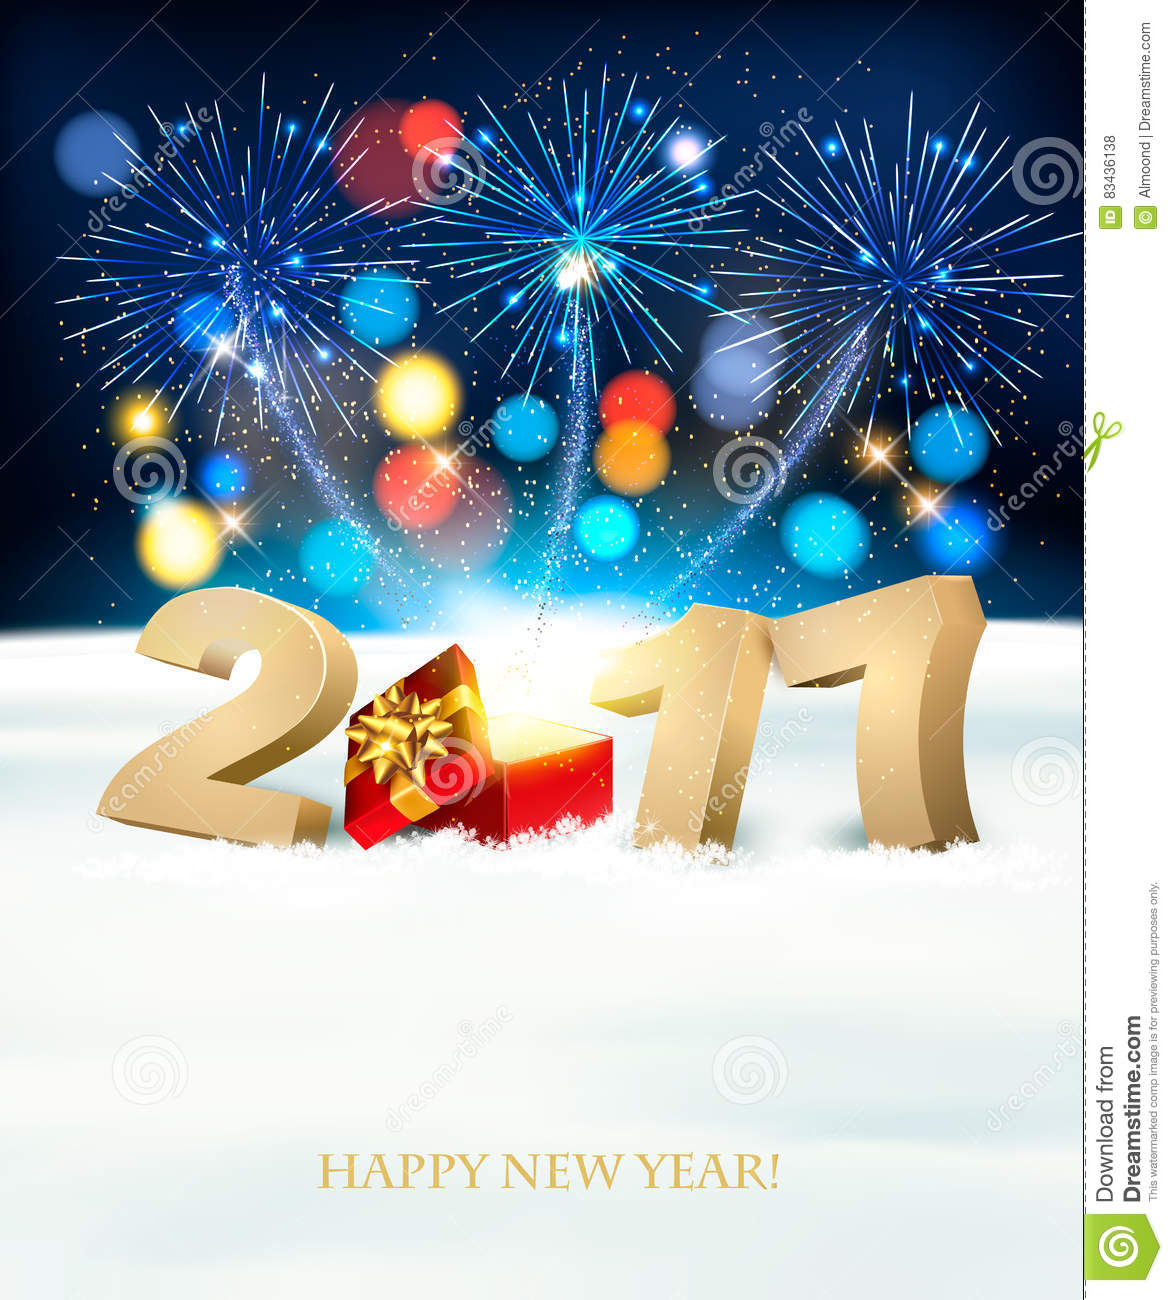 happy new year 2017 background with a magical gift box